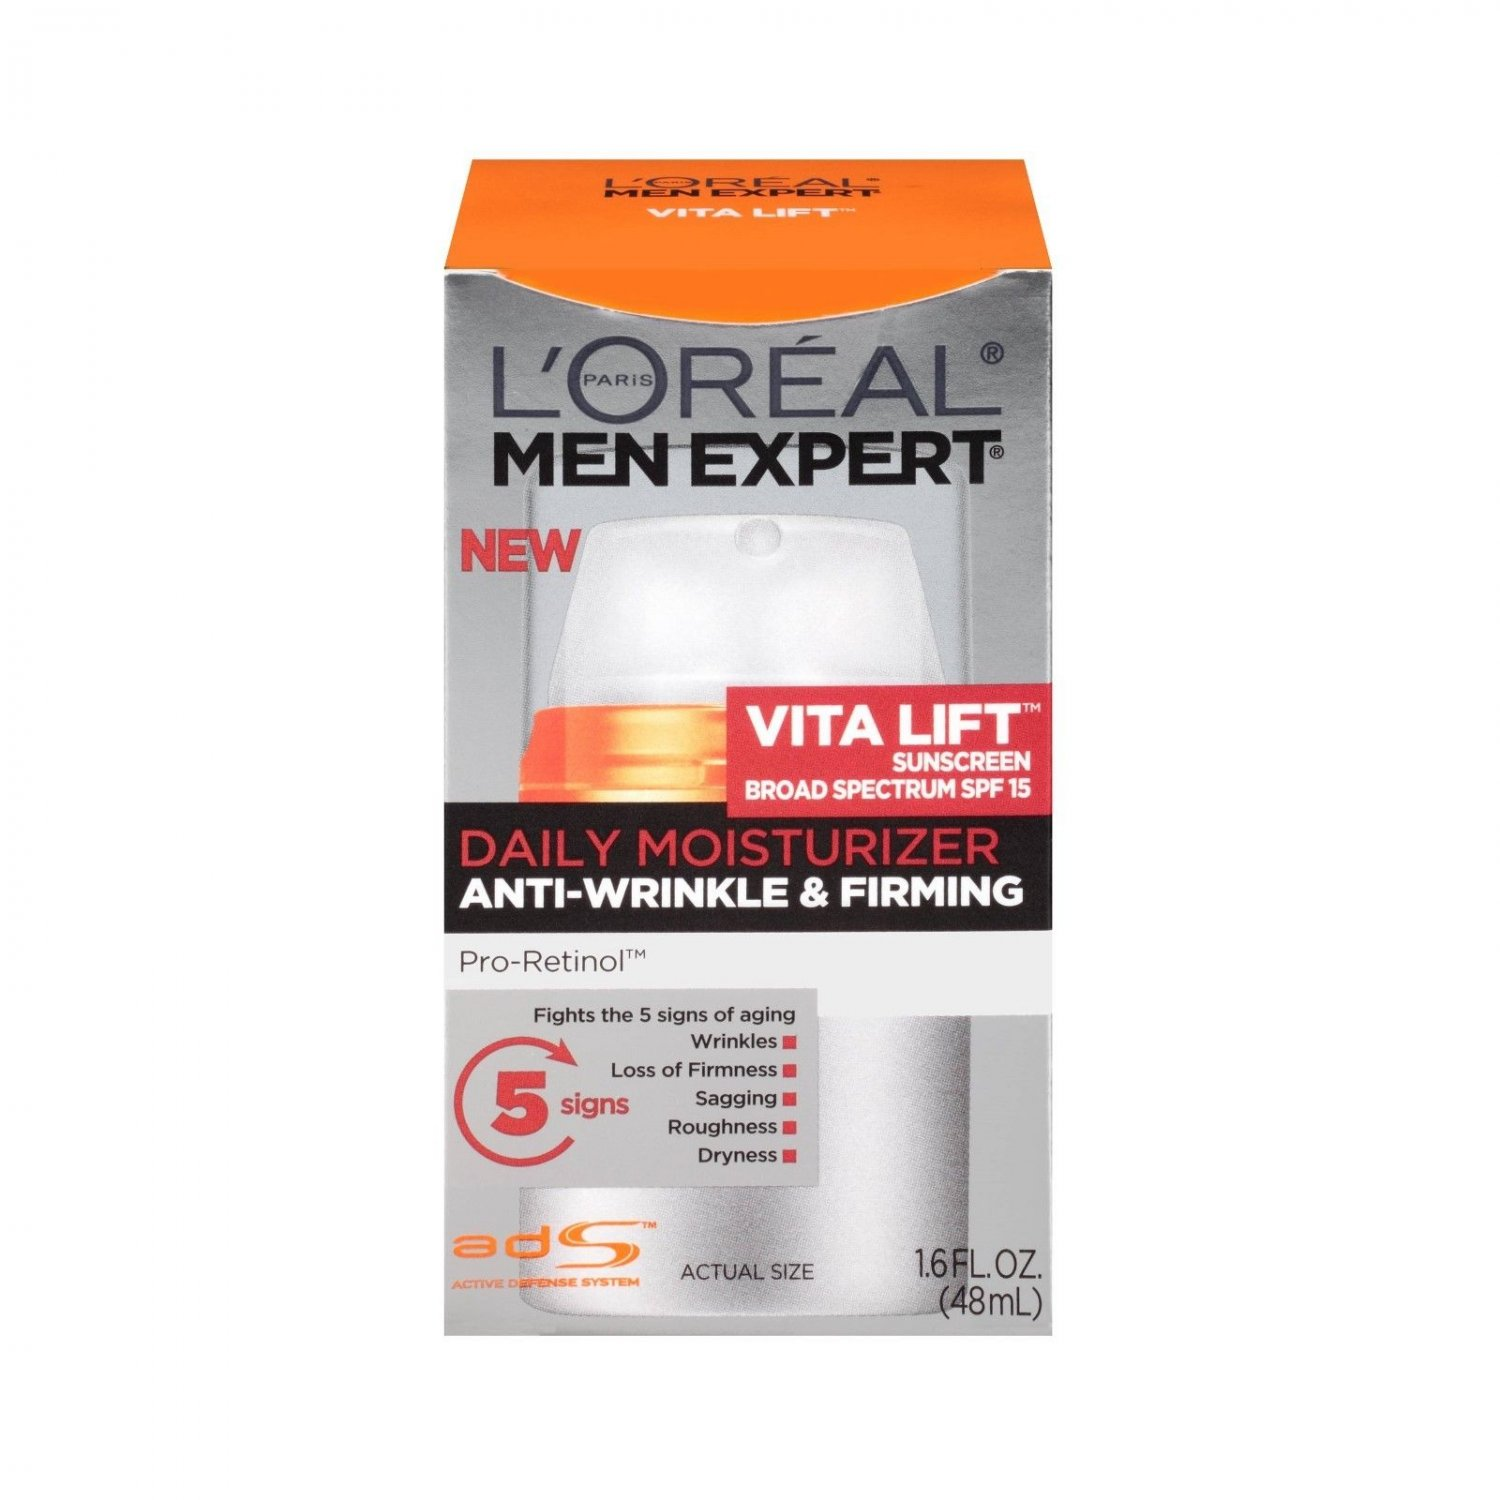 L'Oréal® Paris Men Expert® Vita Lift Daily Moisturizer with SPF 15 - 1.6 fl oz